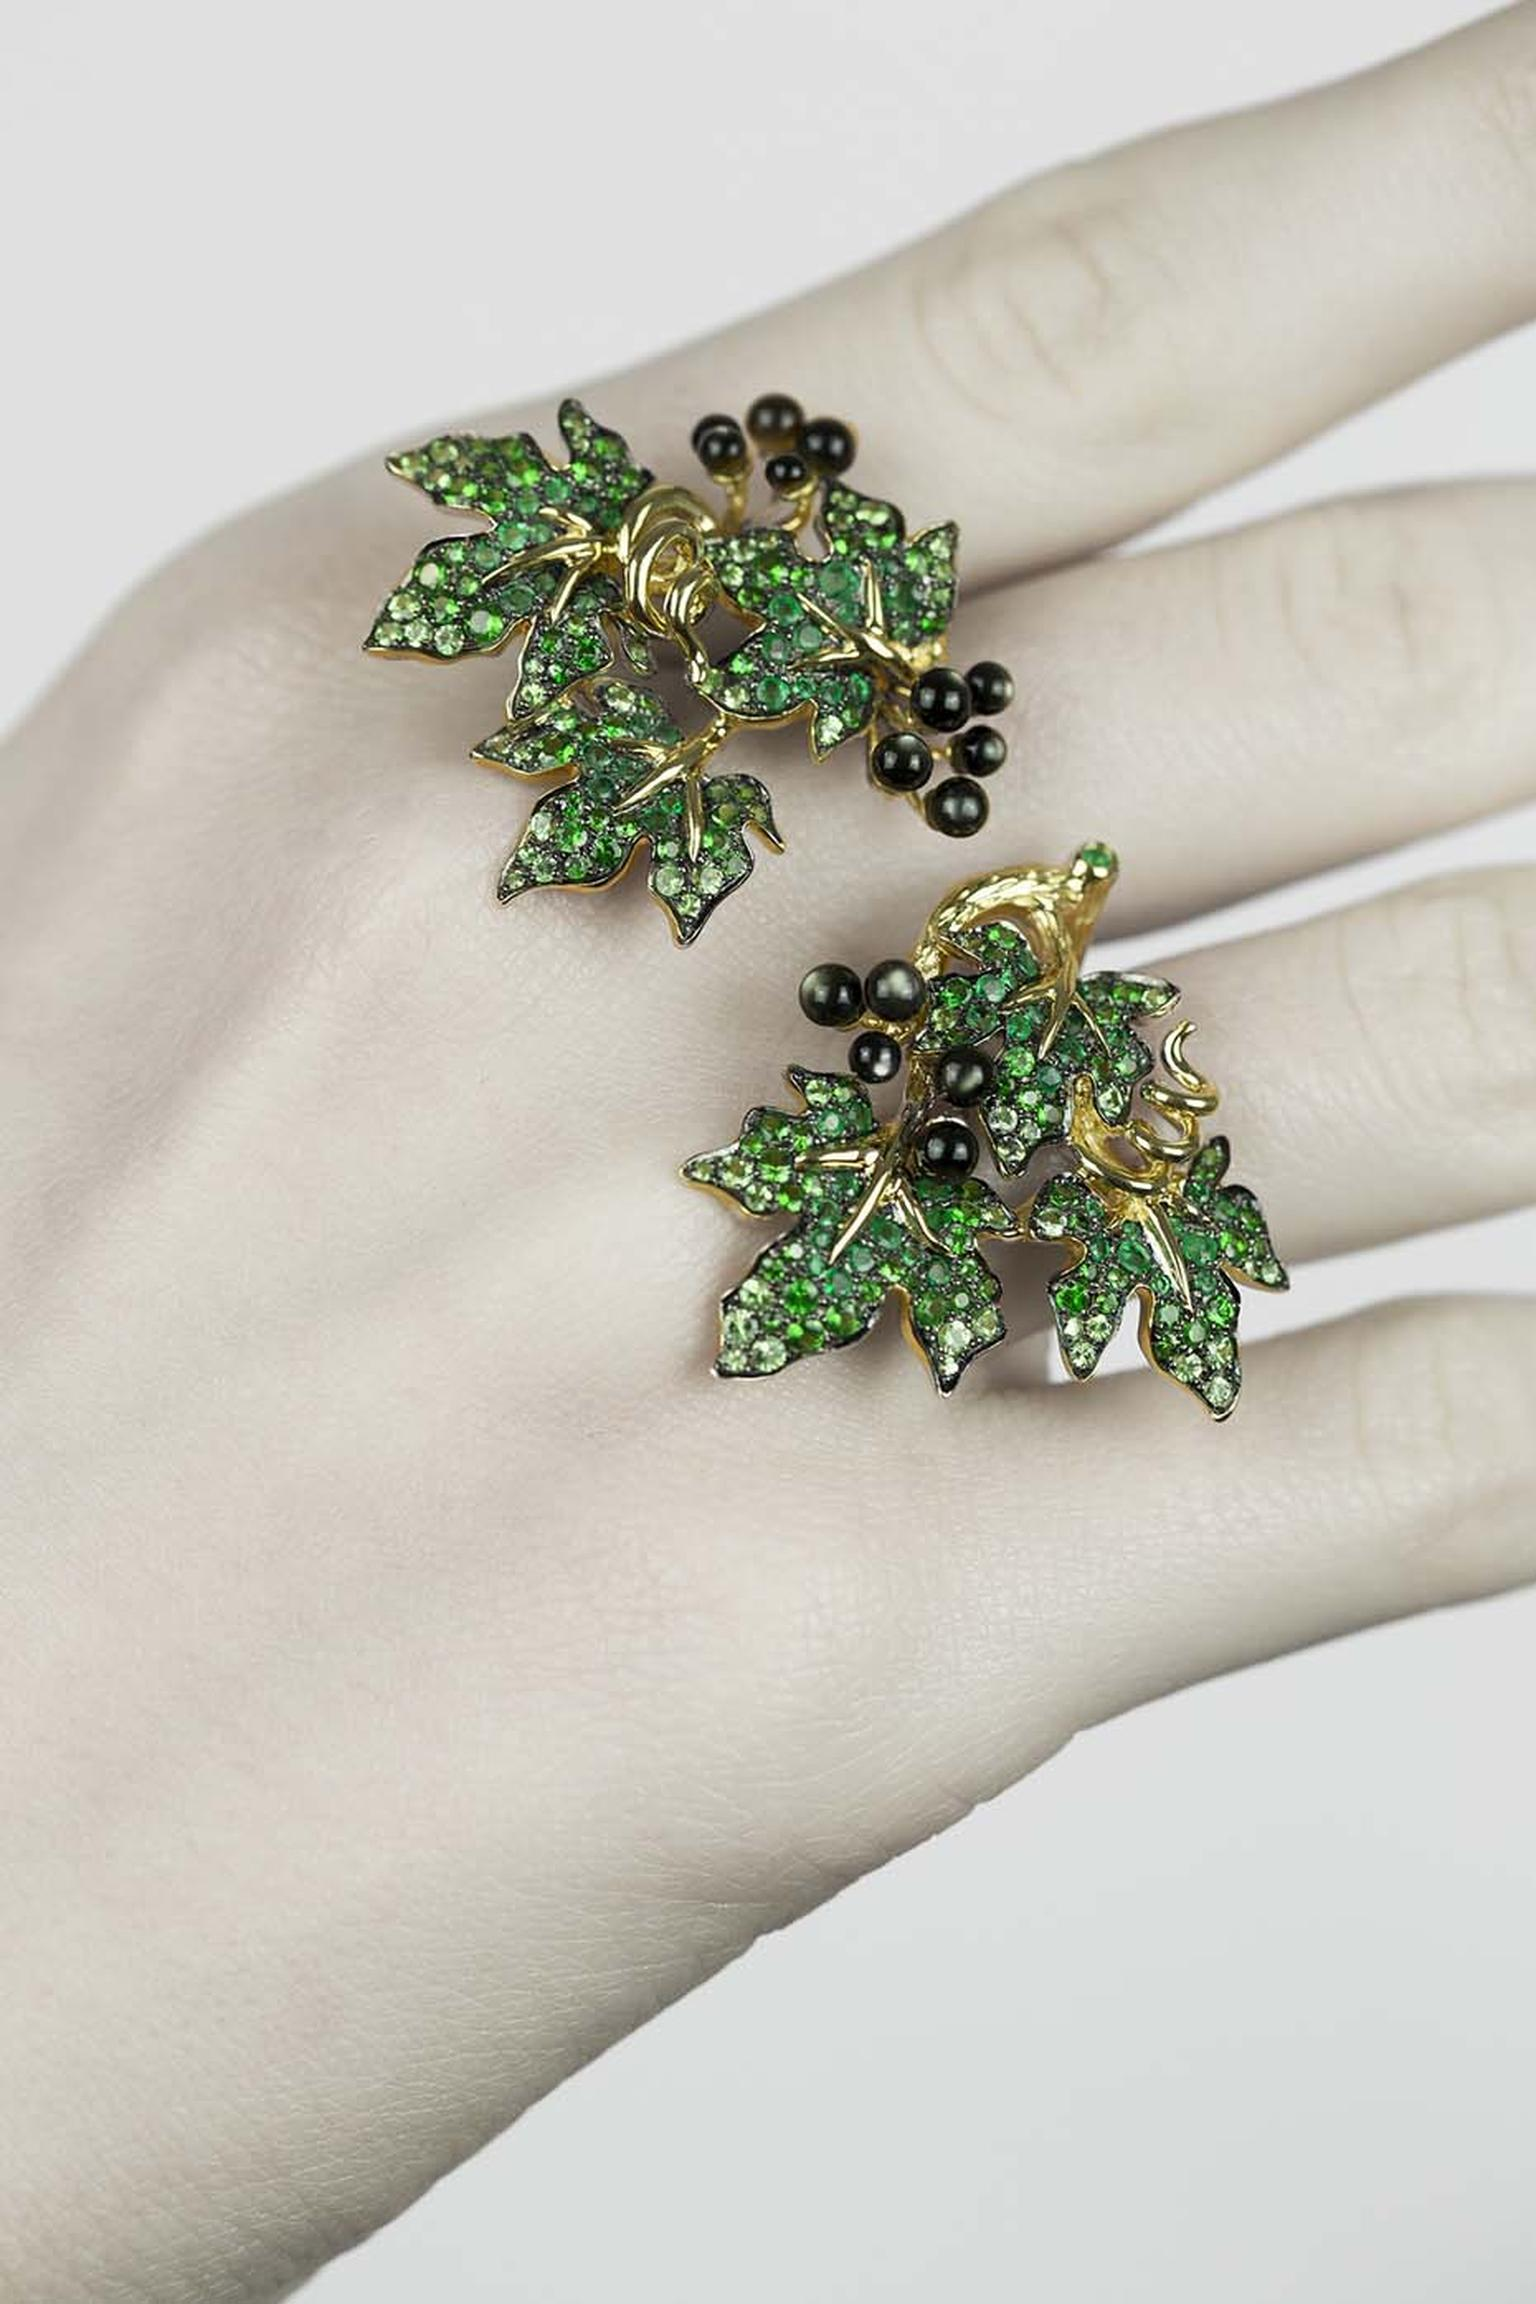 Morphée Millésime ring in gold with emeralds and grey pearled nacre